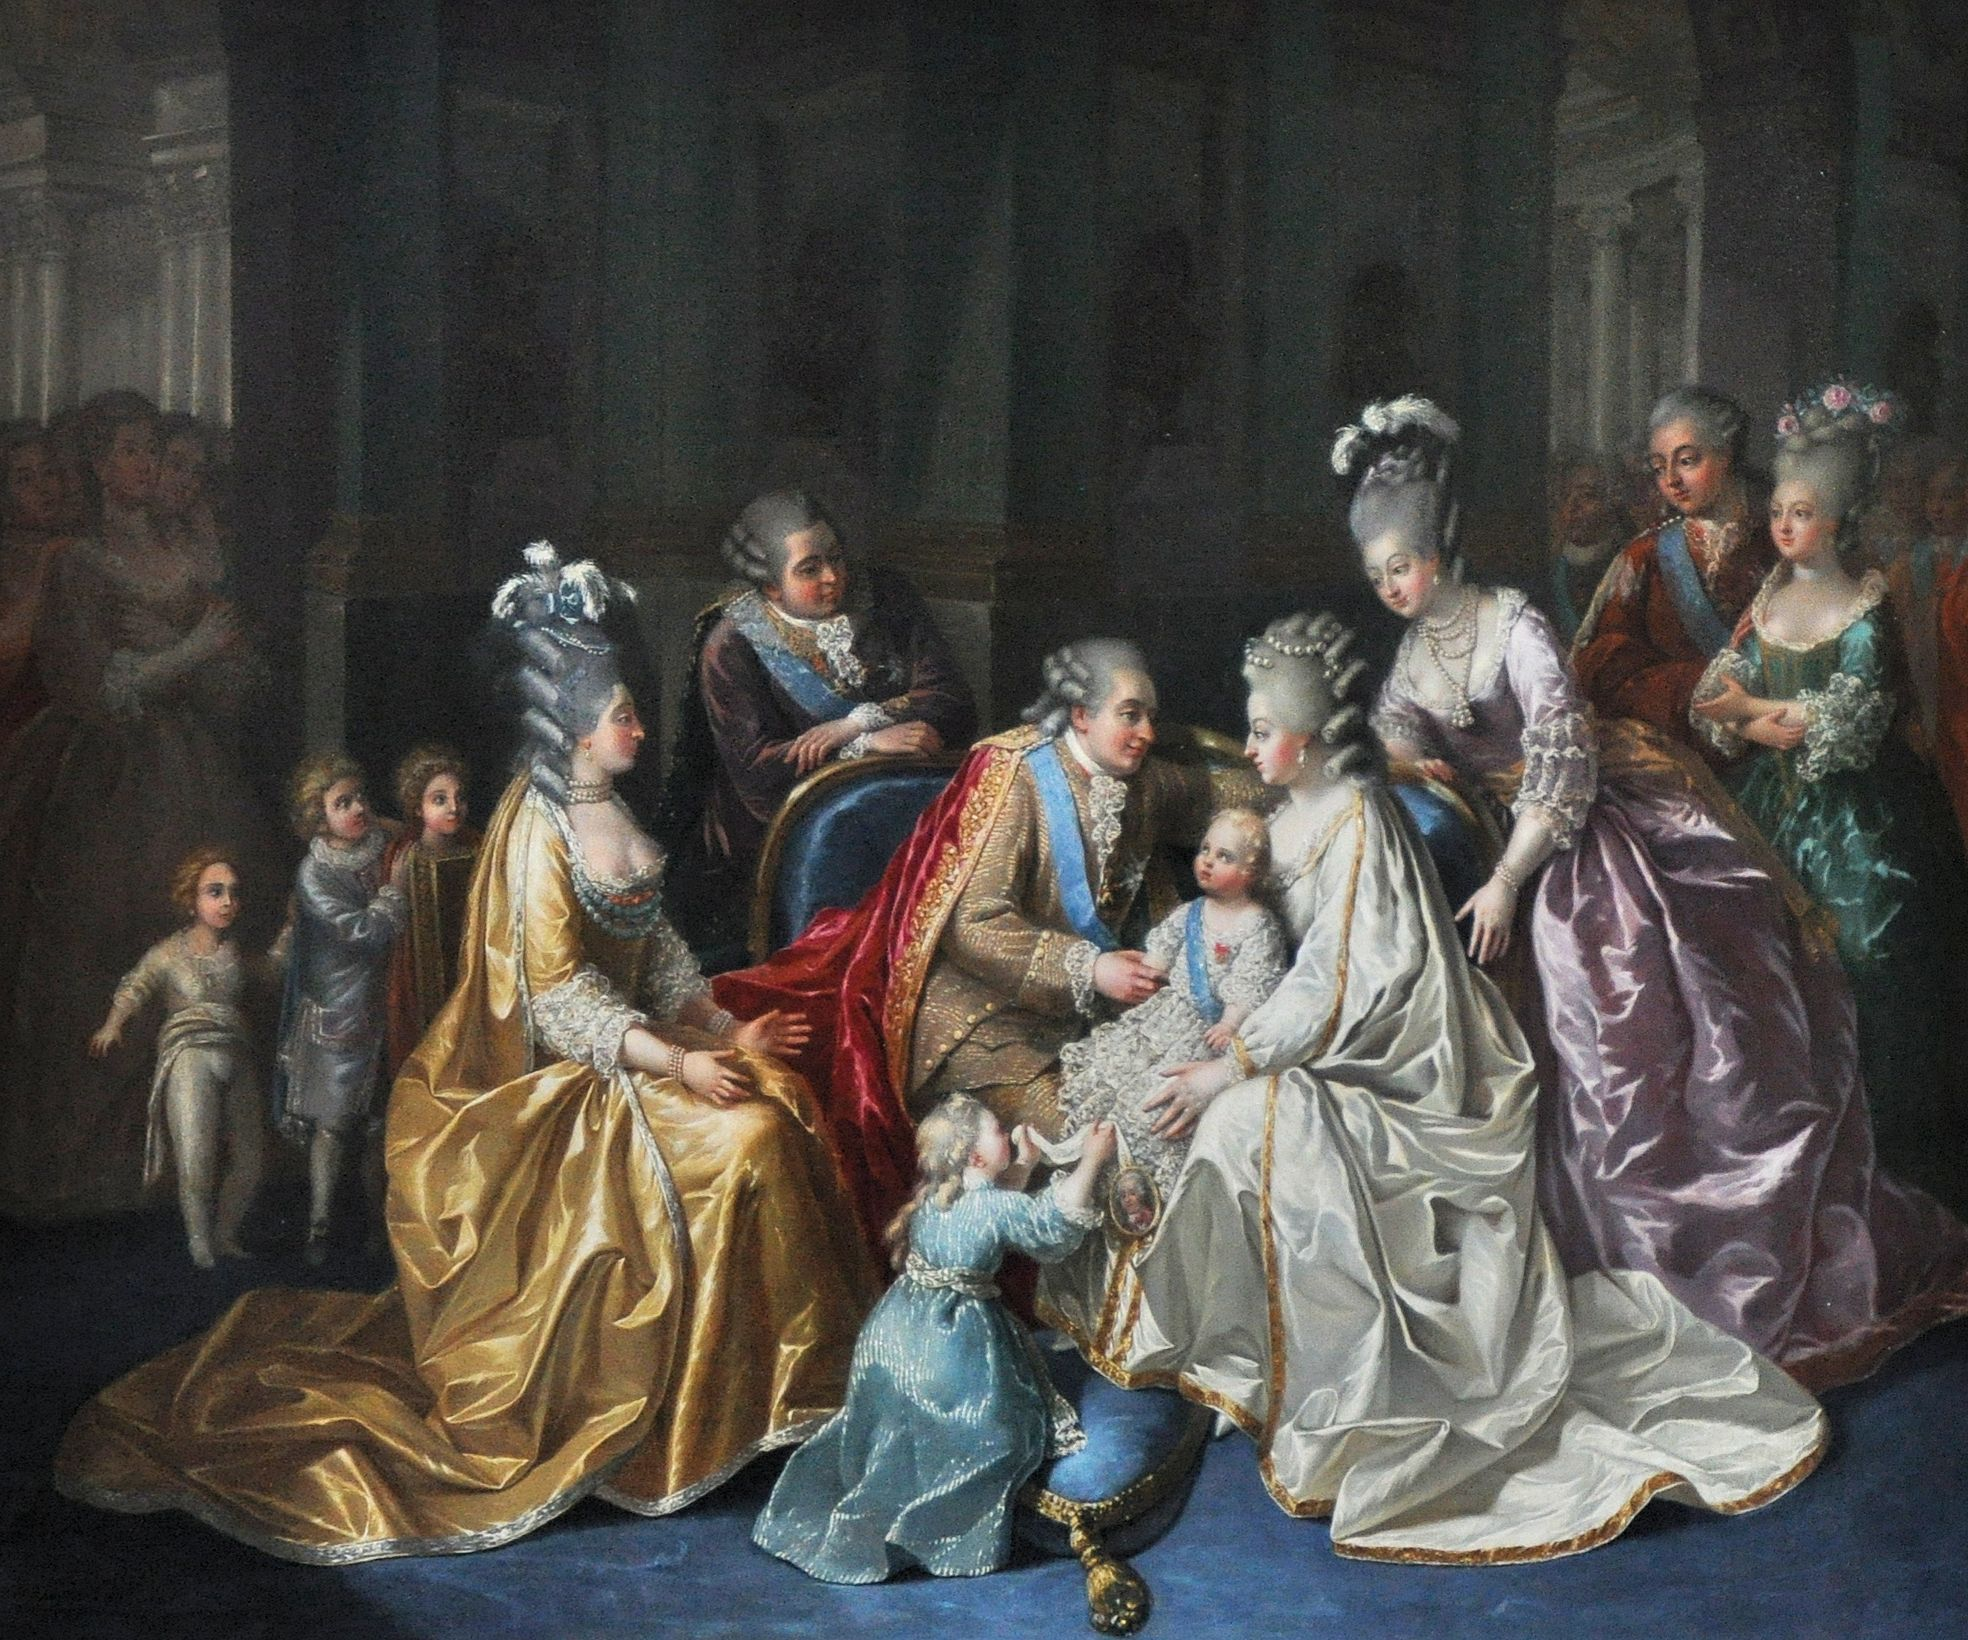 File:The French Royal Family in 1782 (anonymous artist, Versailles).jpg